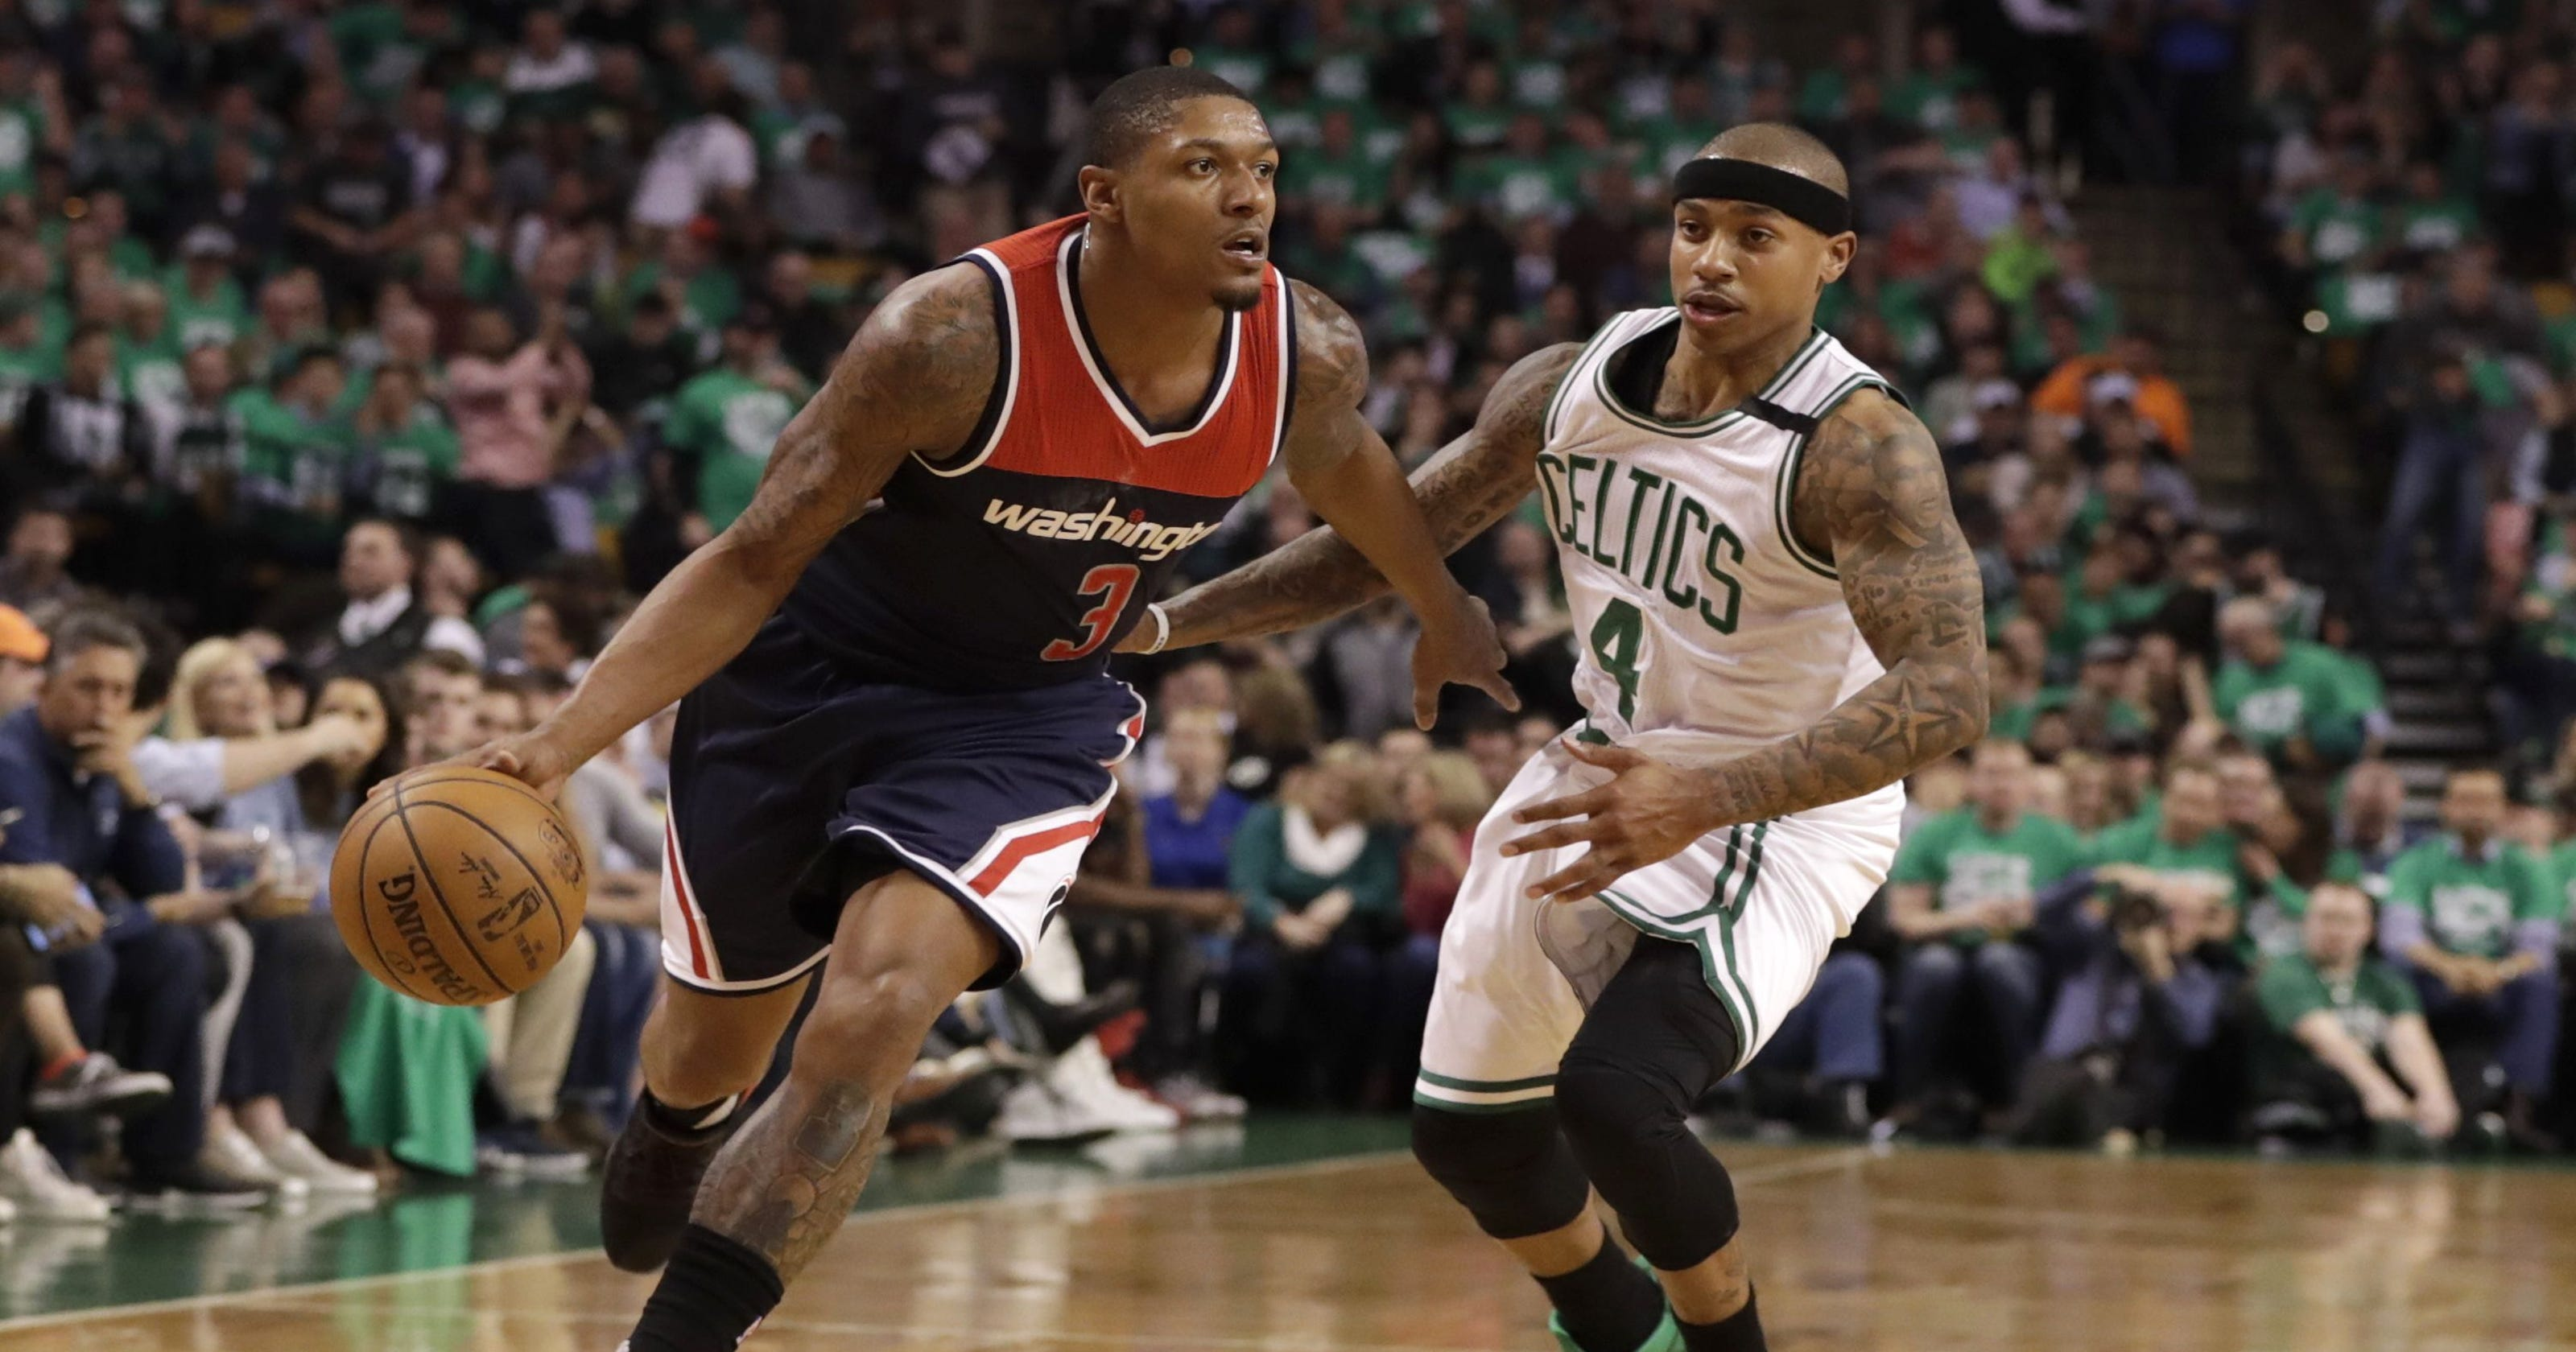 ad0e86c0eb30 Celtics vs. Wizards  What to watch in Game 7 Monday night